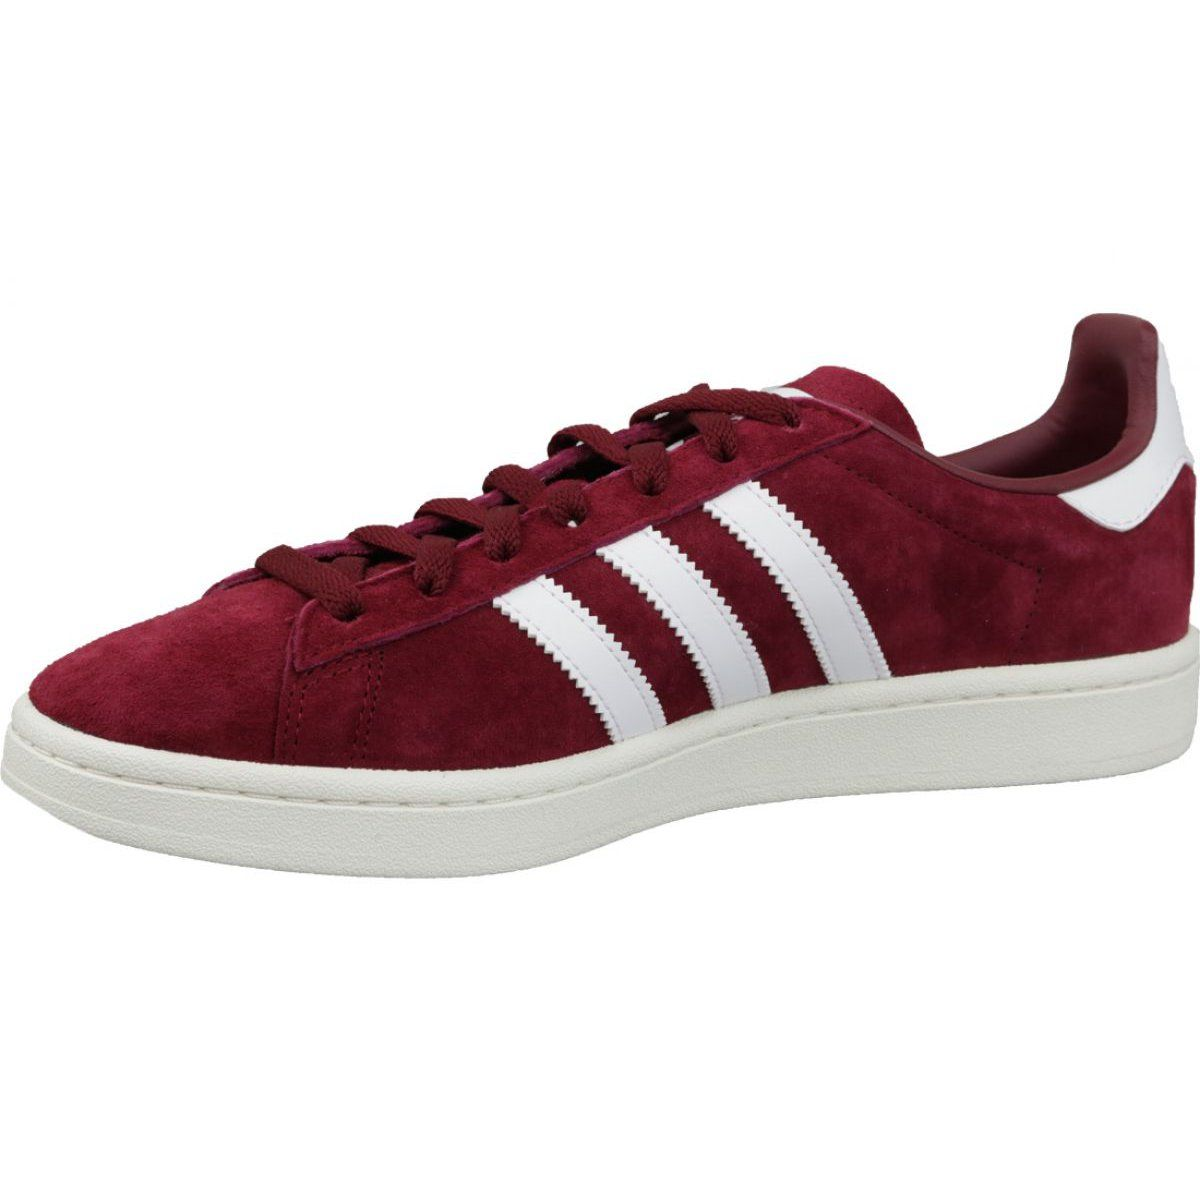 Buty Adidas Originals Campus M Bz0087 Bordowe Wielokolorowe Adidas Outfit Shoes Adidas Shoes Outlet Burgundy Shoes